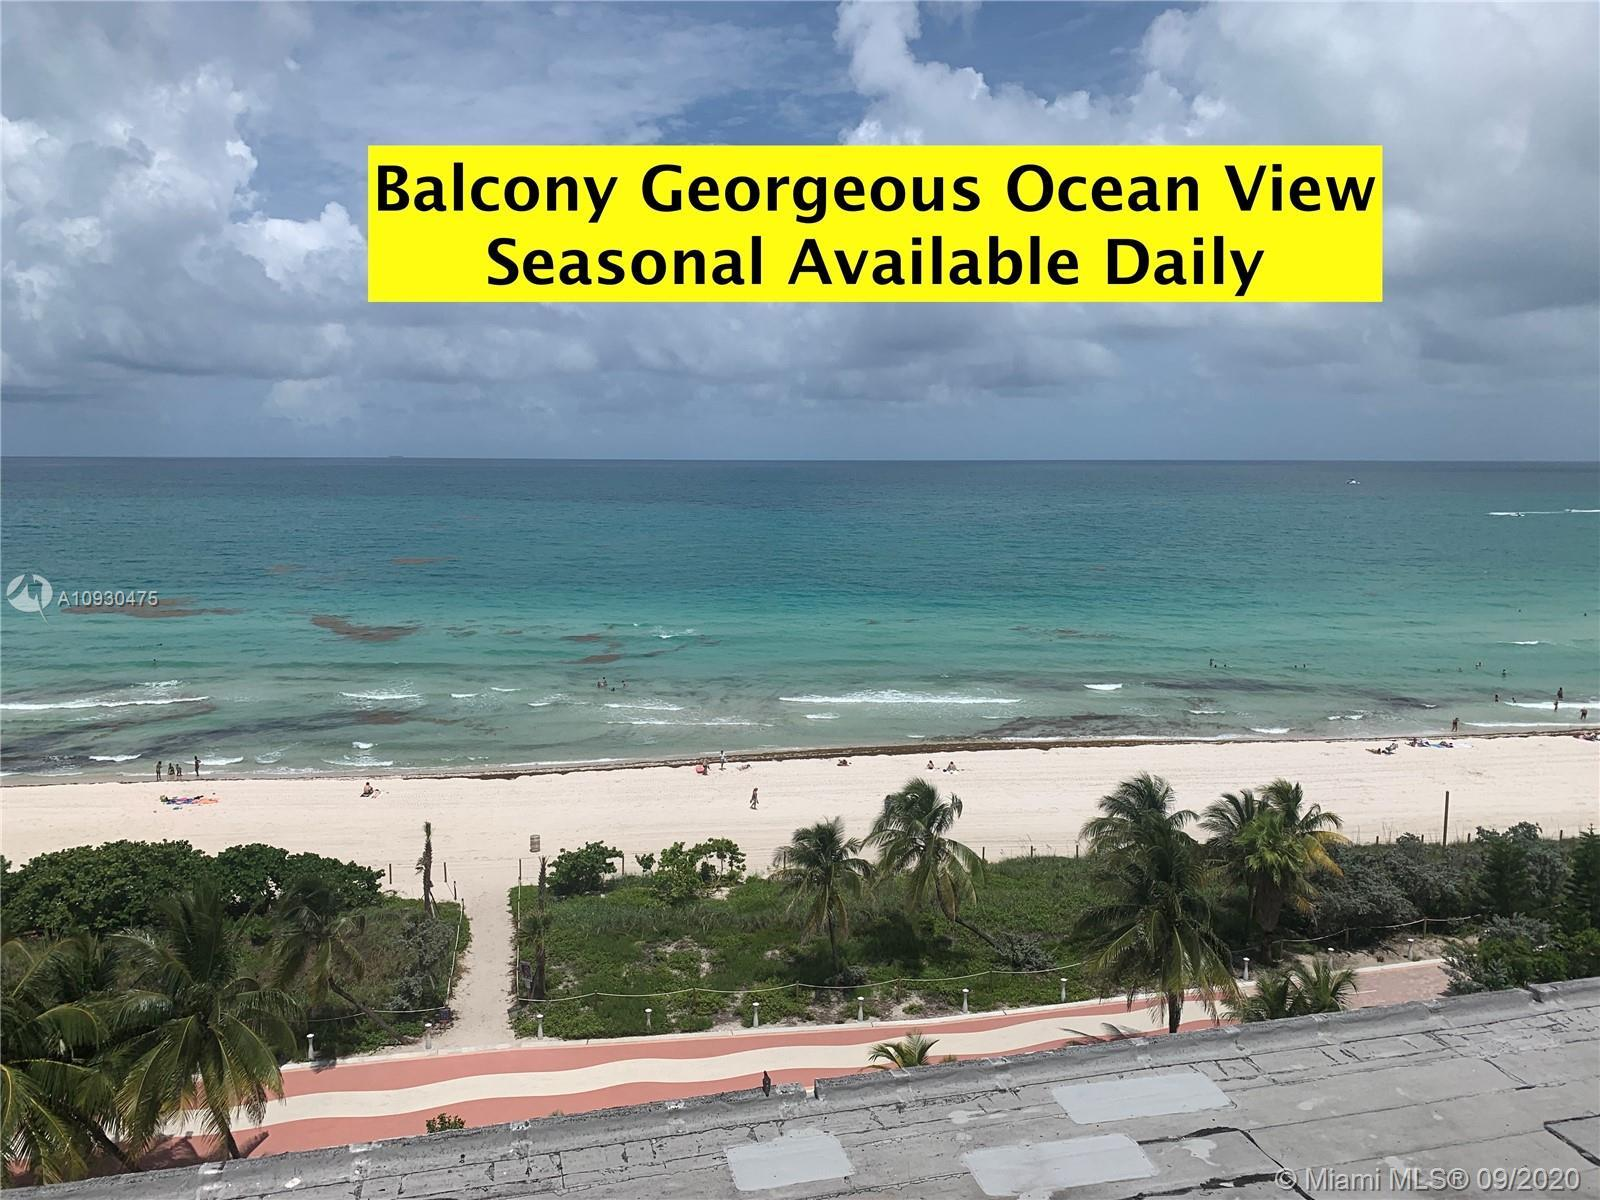 OCEAN View with Balcony , Very rare studio, just few in the building. ONLY 1 for sale like this!...M